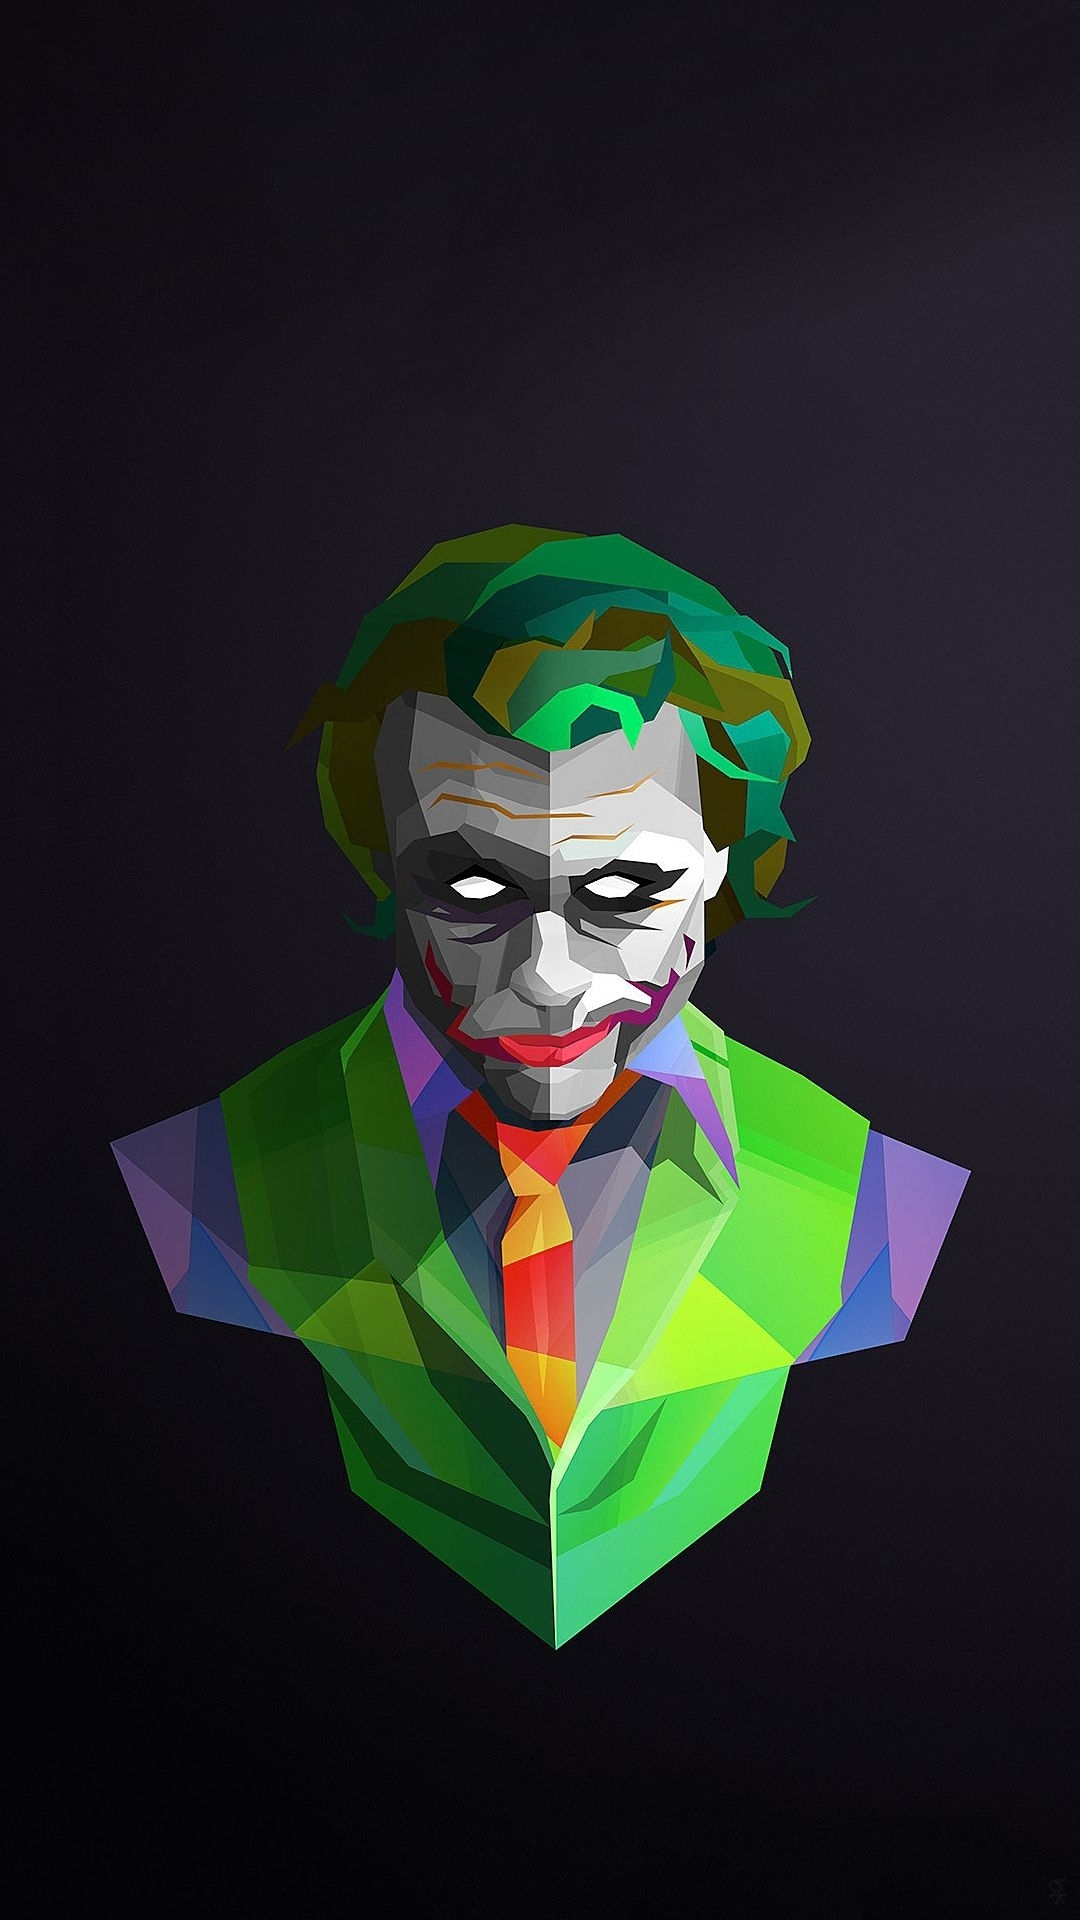 the joker wallpaper iphone 5 - download new the joker wallpaper